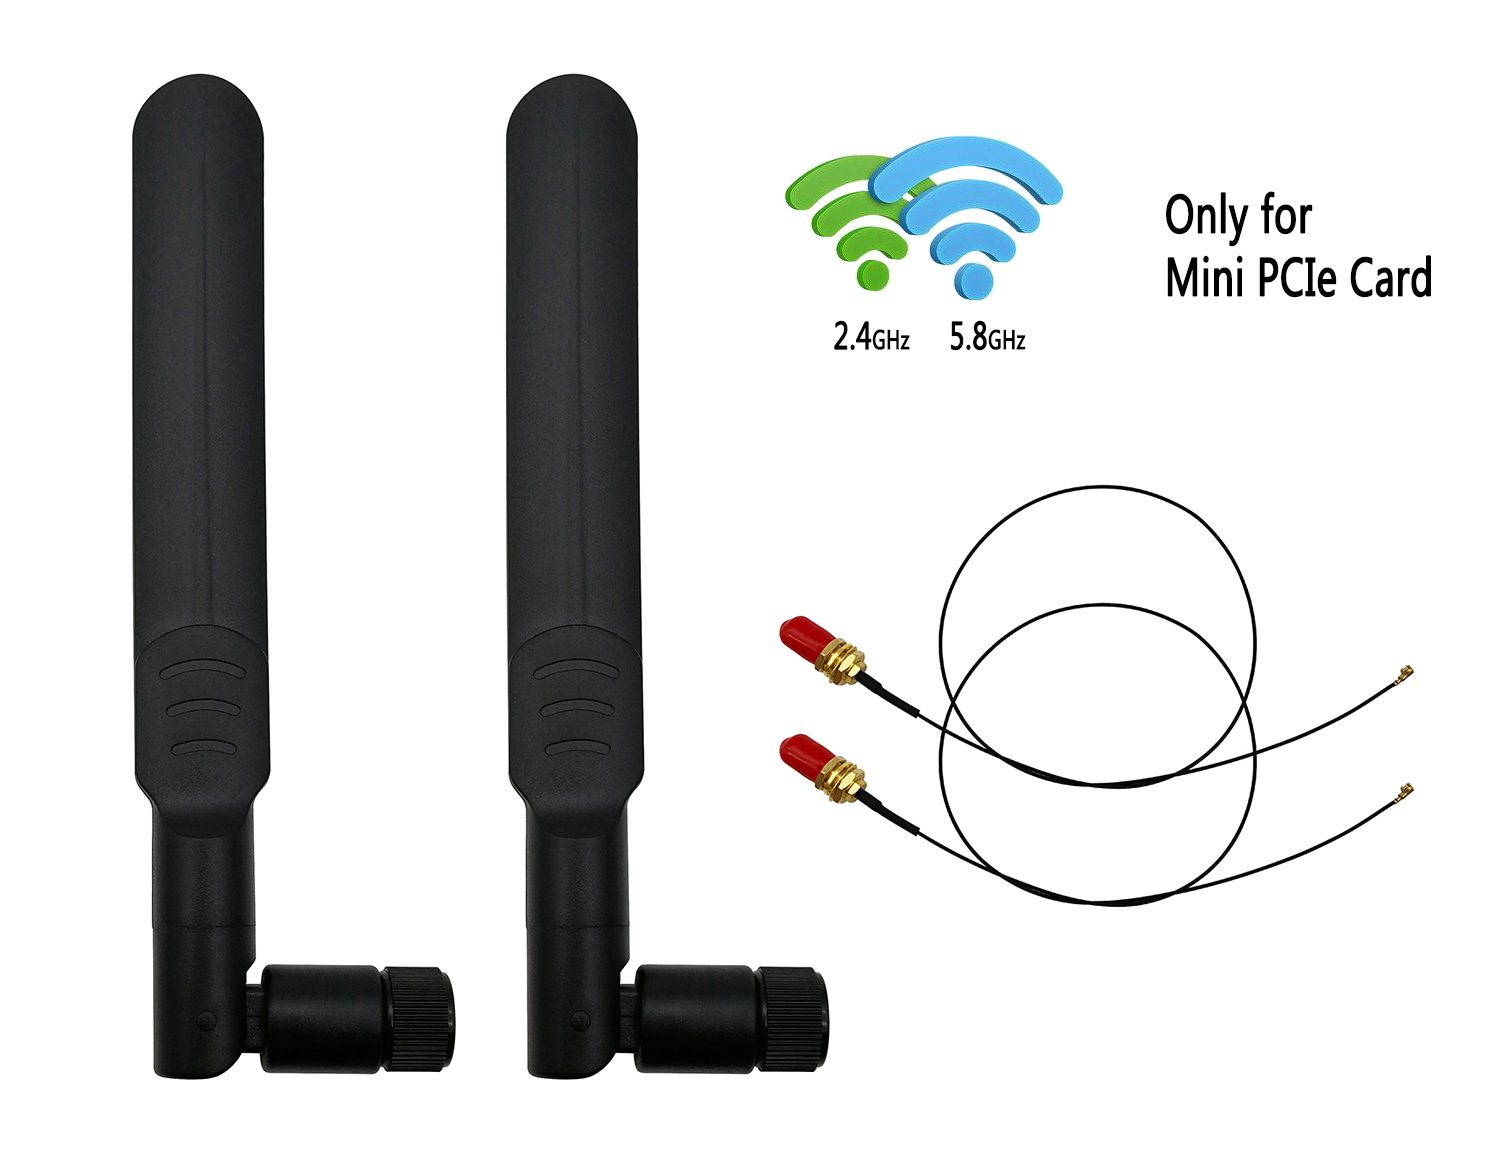 8dBi 2.4GHz 5.8GHz Dual Band Omni-directional WiFi RP-SMA Antenna + 35cm U.fl/IPEX to RP-SMA Female Pigtail Cable for Mini PCIe Card Routers Repeater Desktop PC FPV UAV Drone PS4 Build